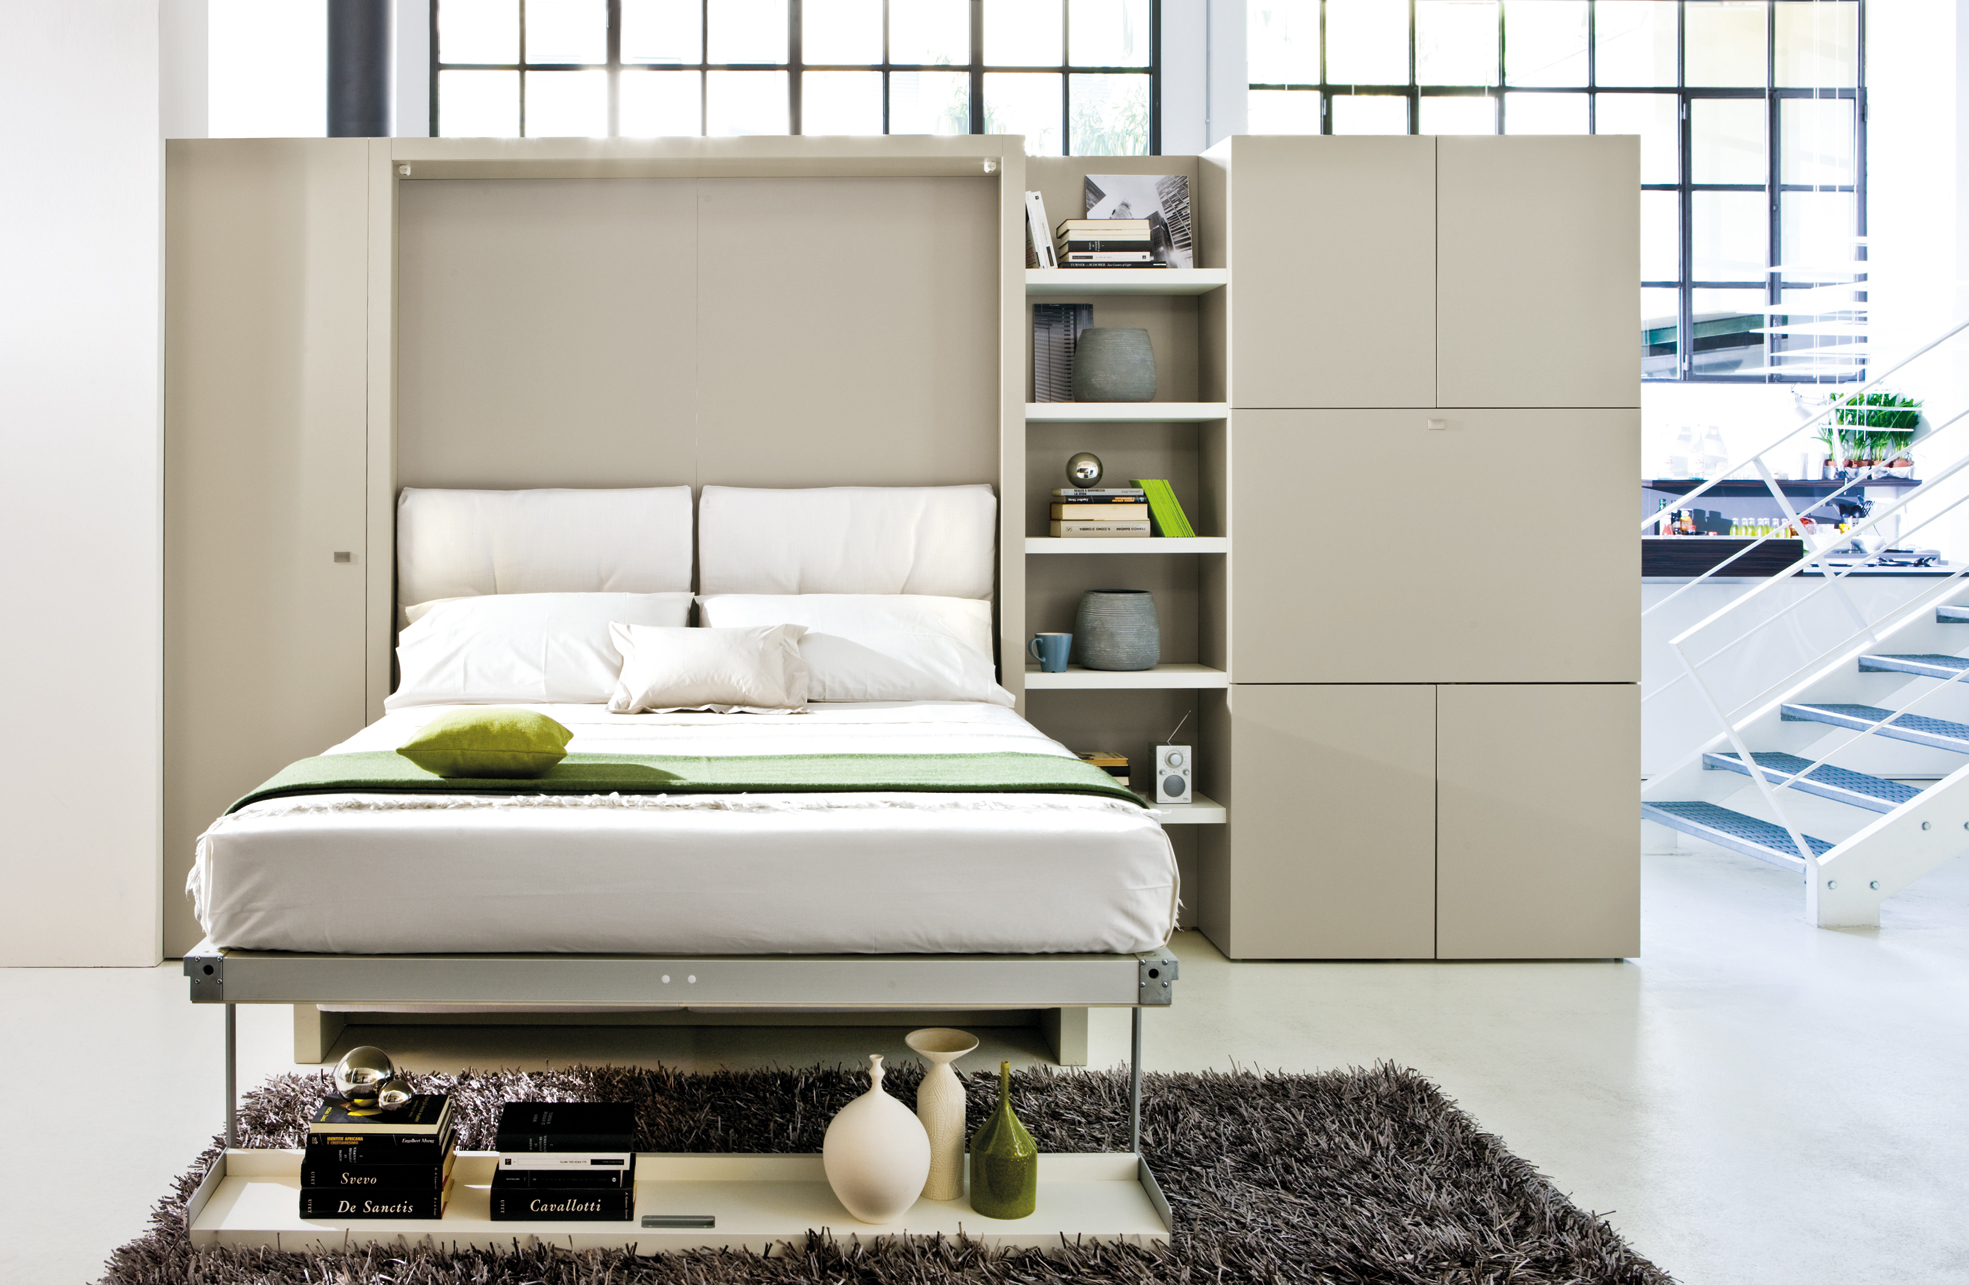 Nuovoliola wall bed clei wall beds london free standing wall click to enlarge amipublicfo Images